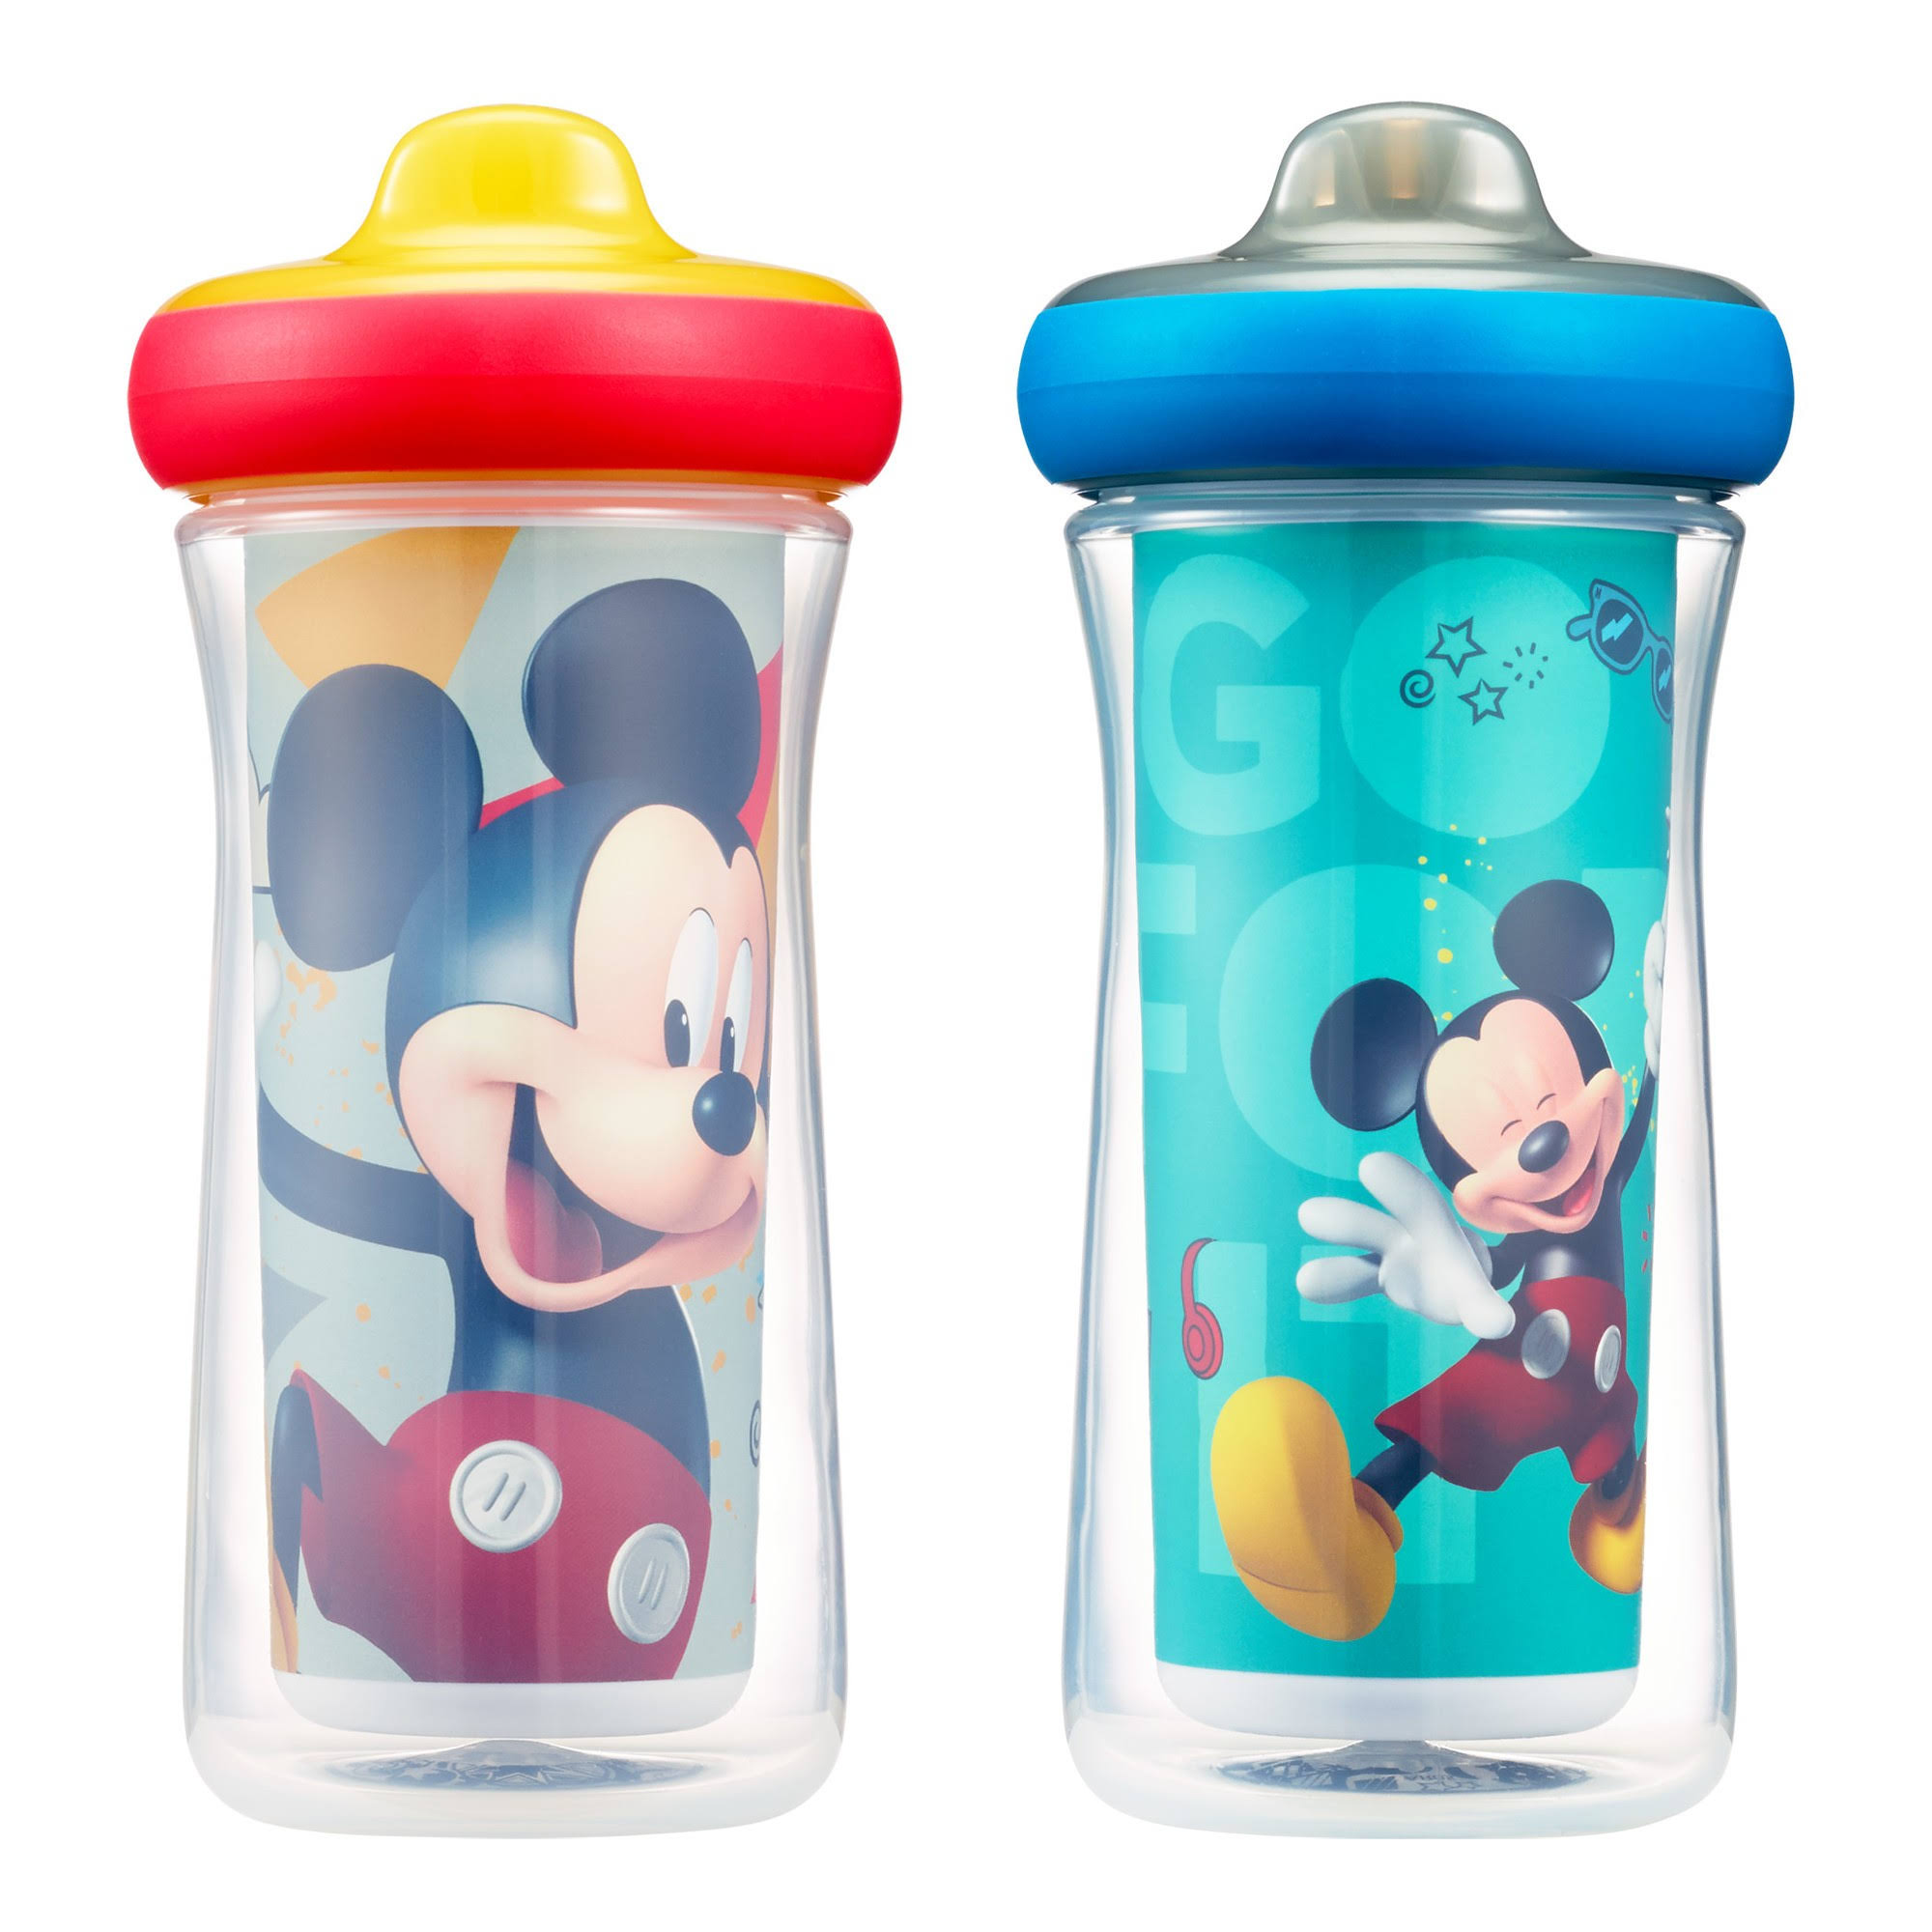 The First Years Disney Mickey Mouse Imaginaction 2-Pack 9 oz. Insulated Hard Spout Sippy Cups